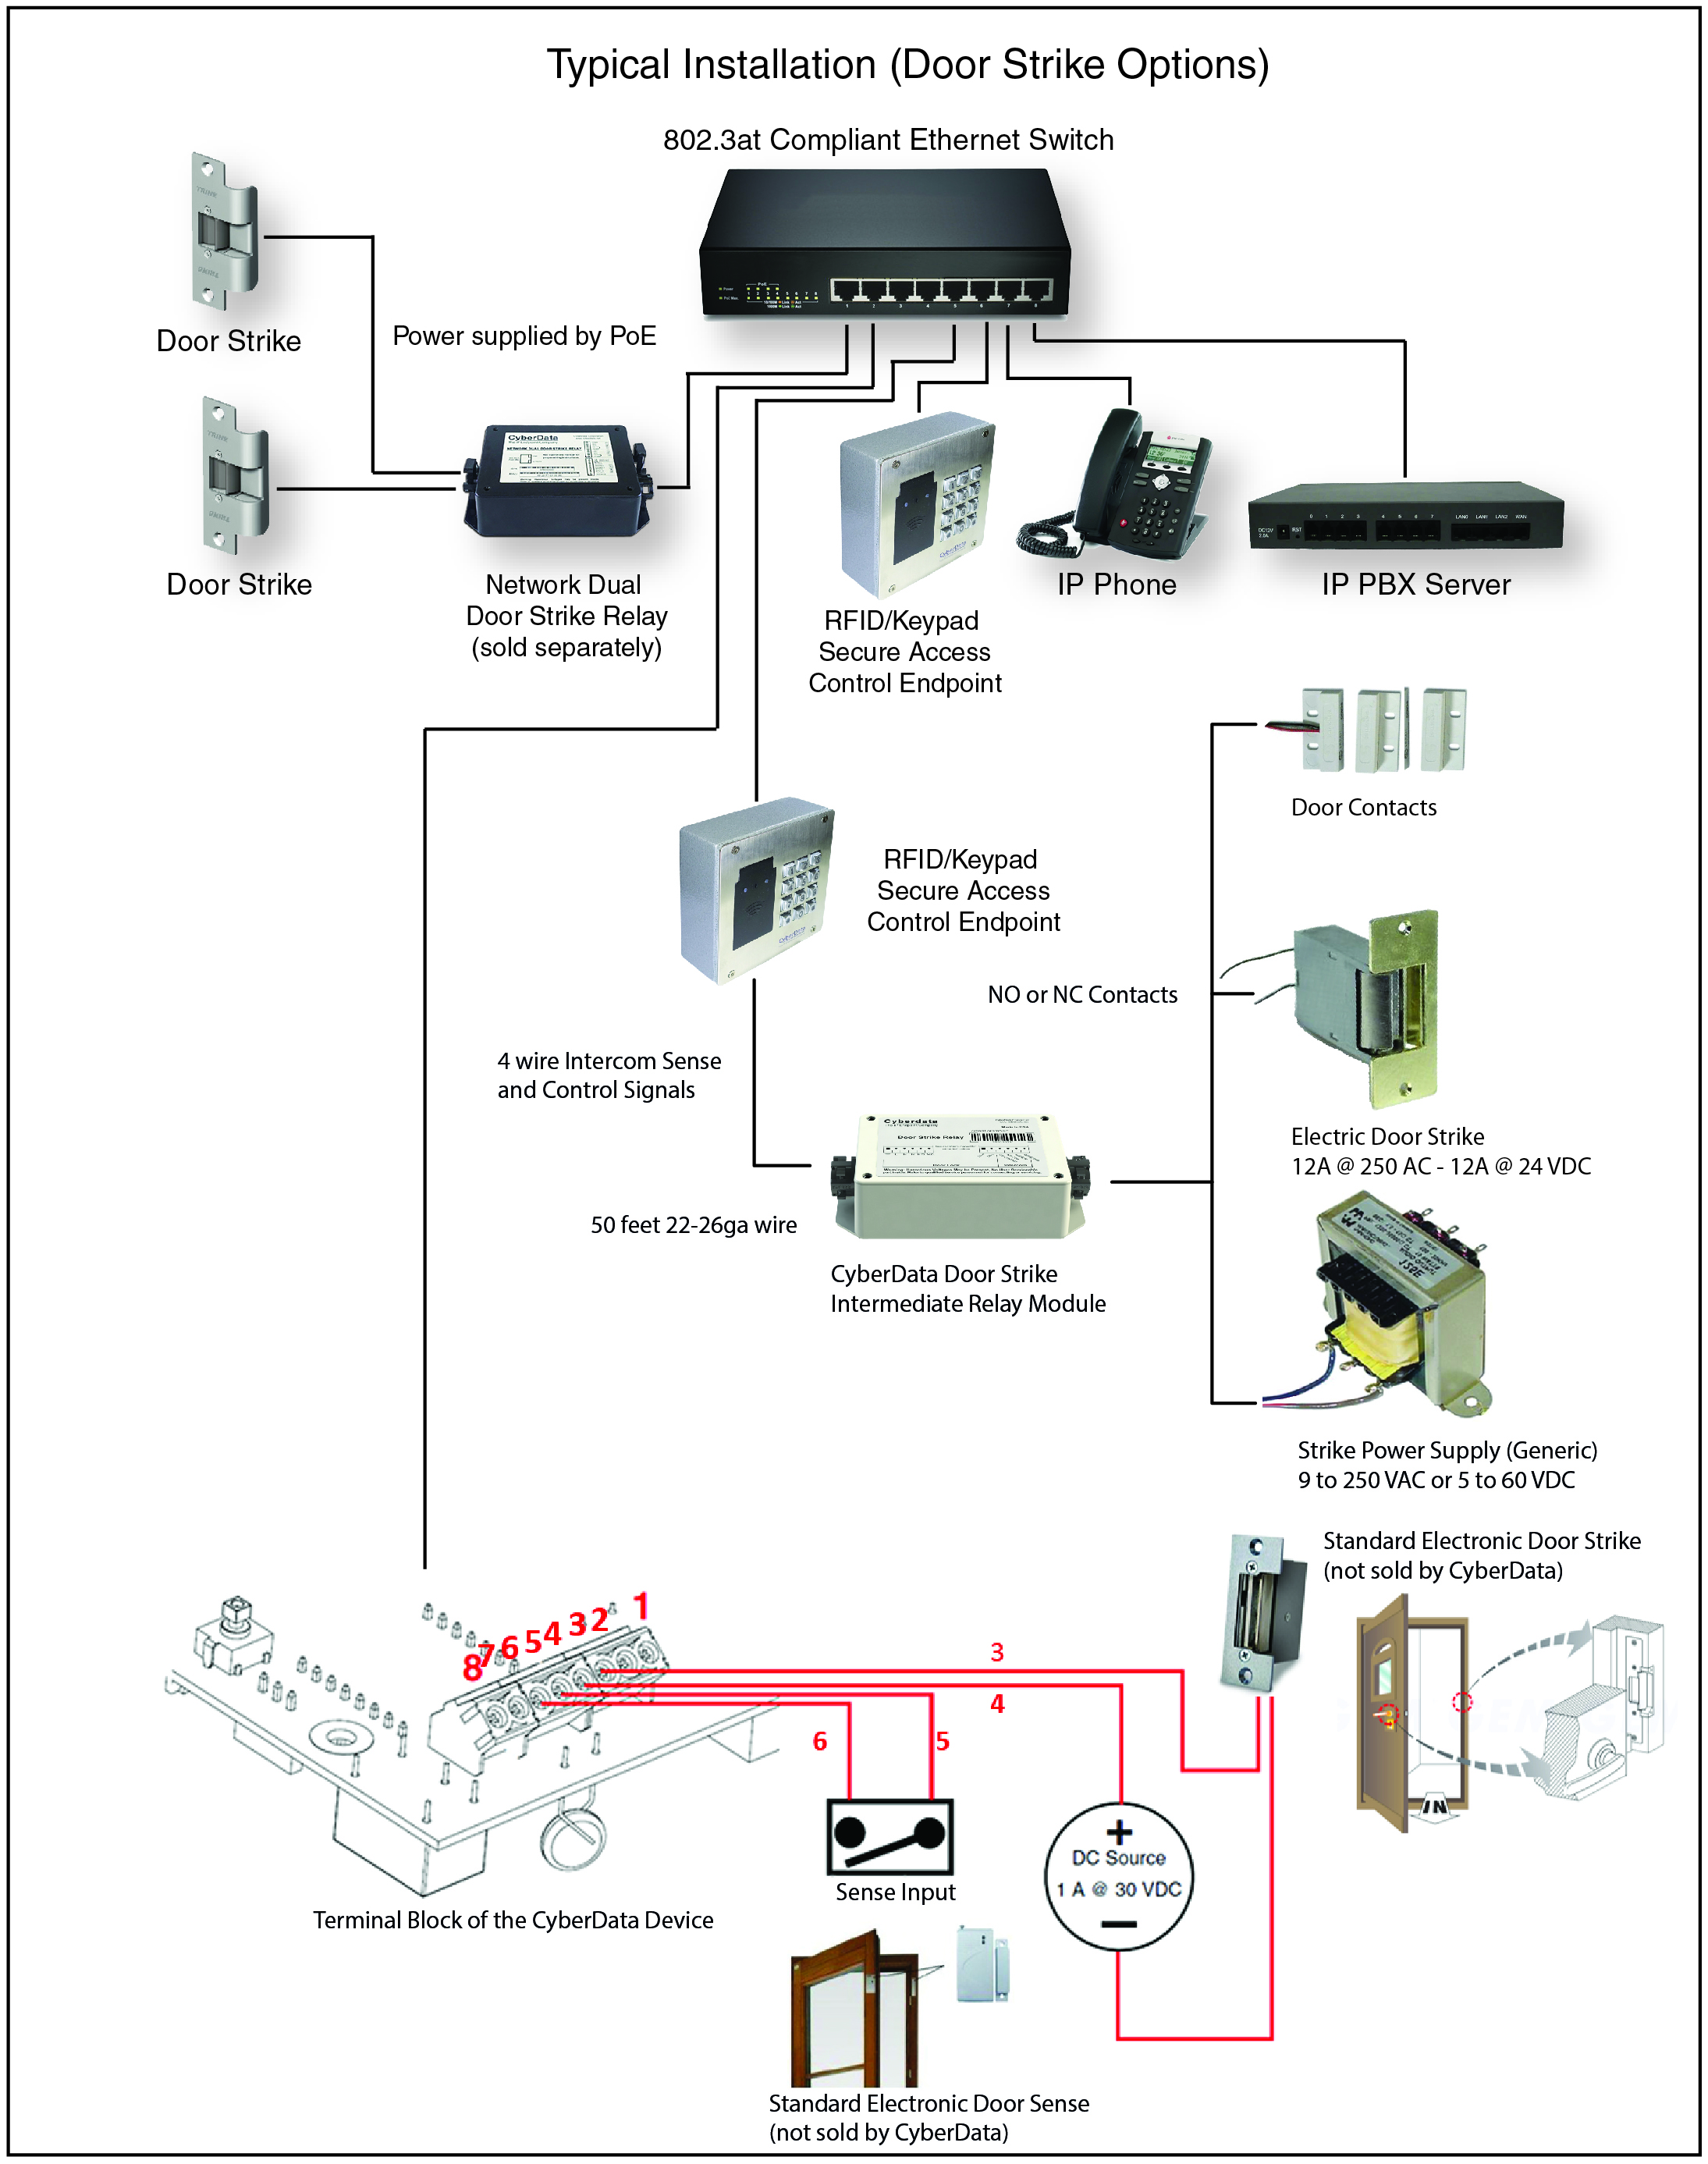 011426 Rfid Keypad Secure Access Control Endpoint Cyberdata 4 Wire Intercom Diagram Typical Installation